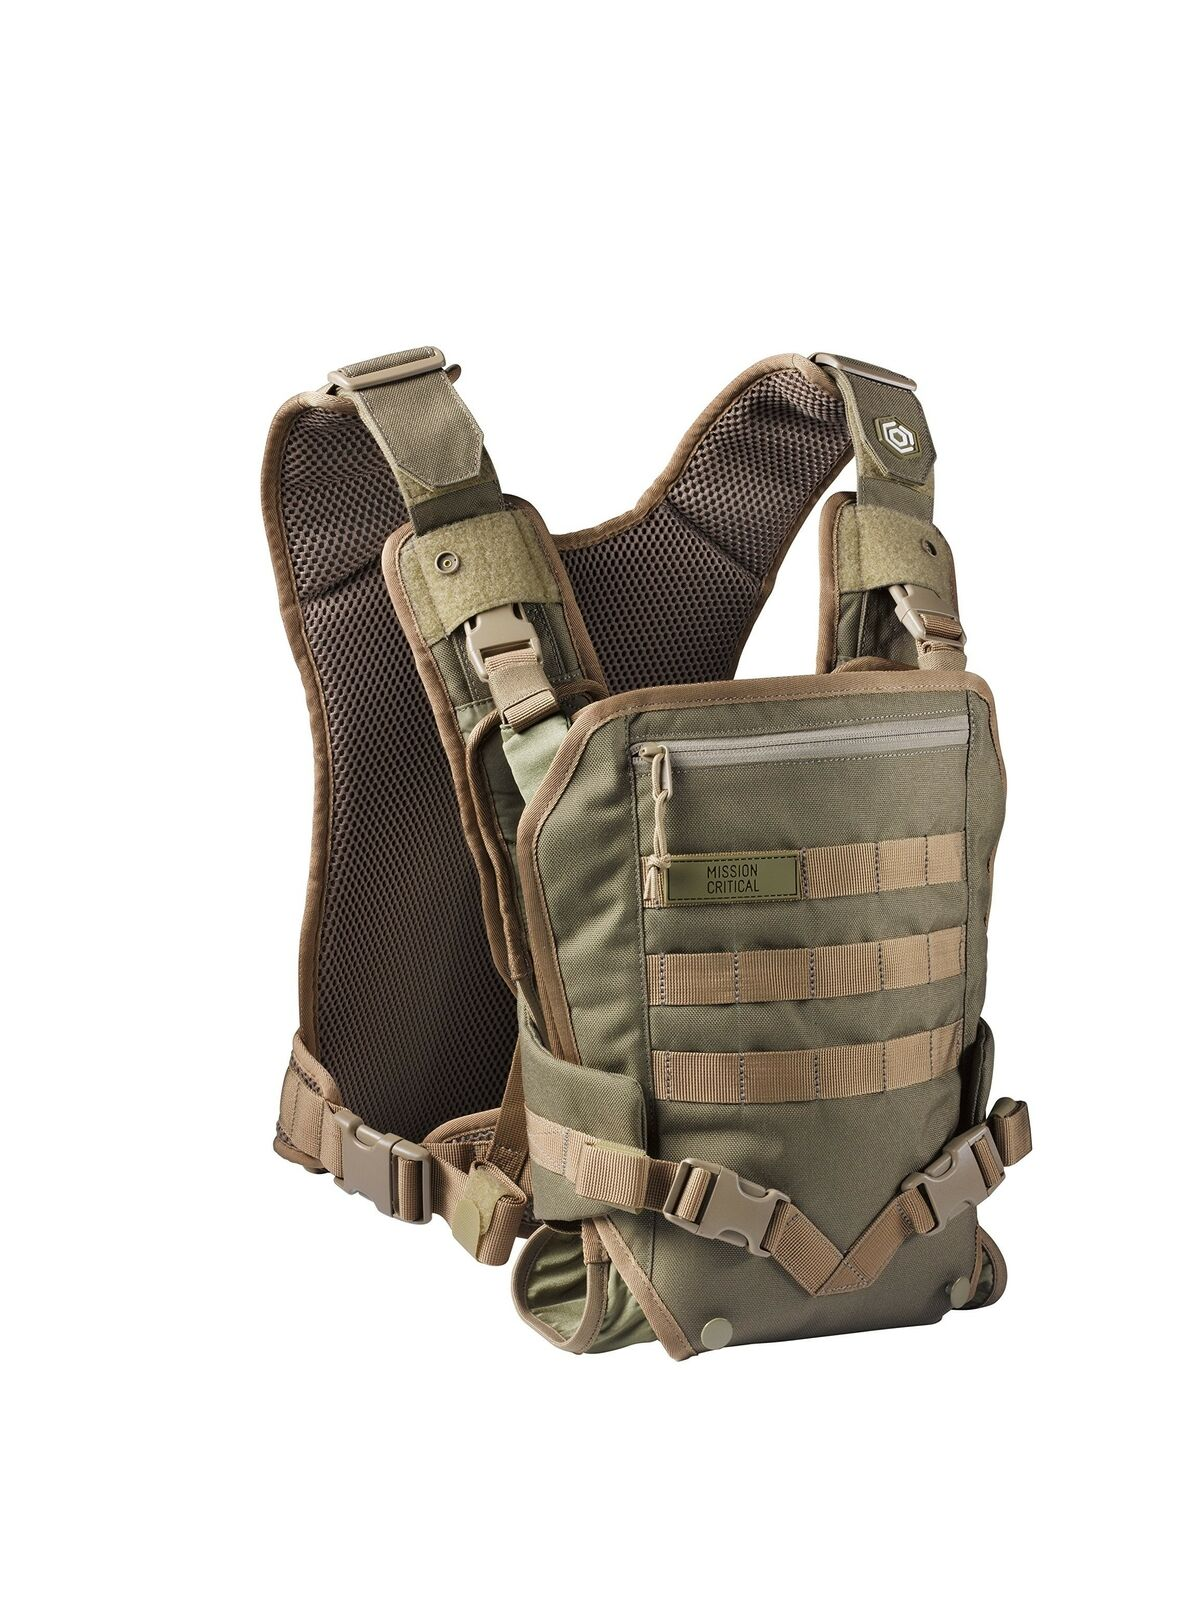 Infant Carrier Military Men S Baby Carrier Front For Dads By Mission Critical Coyote